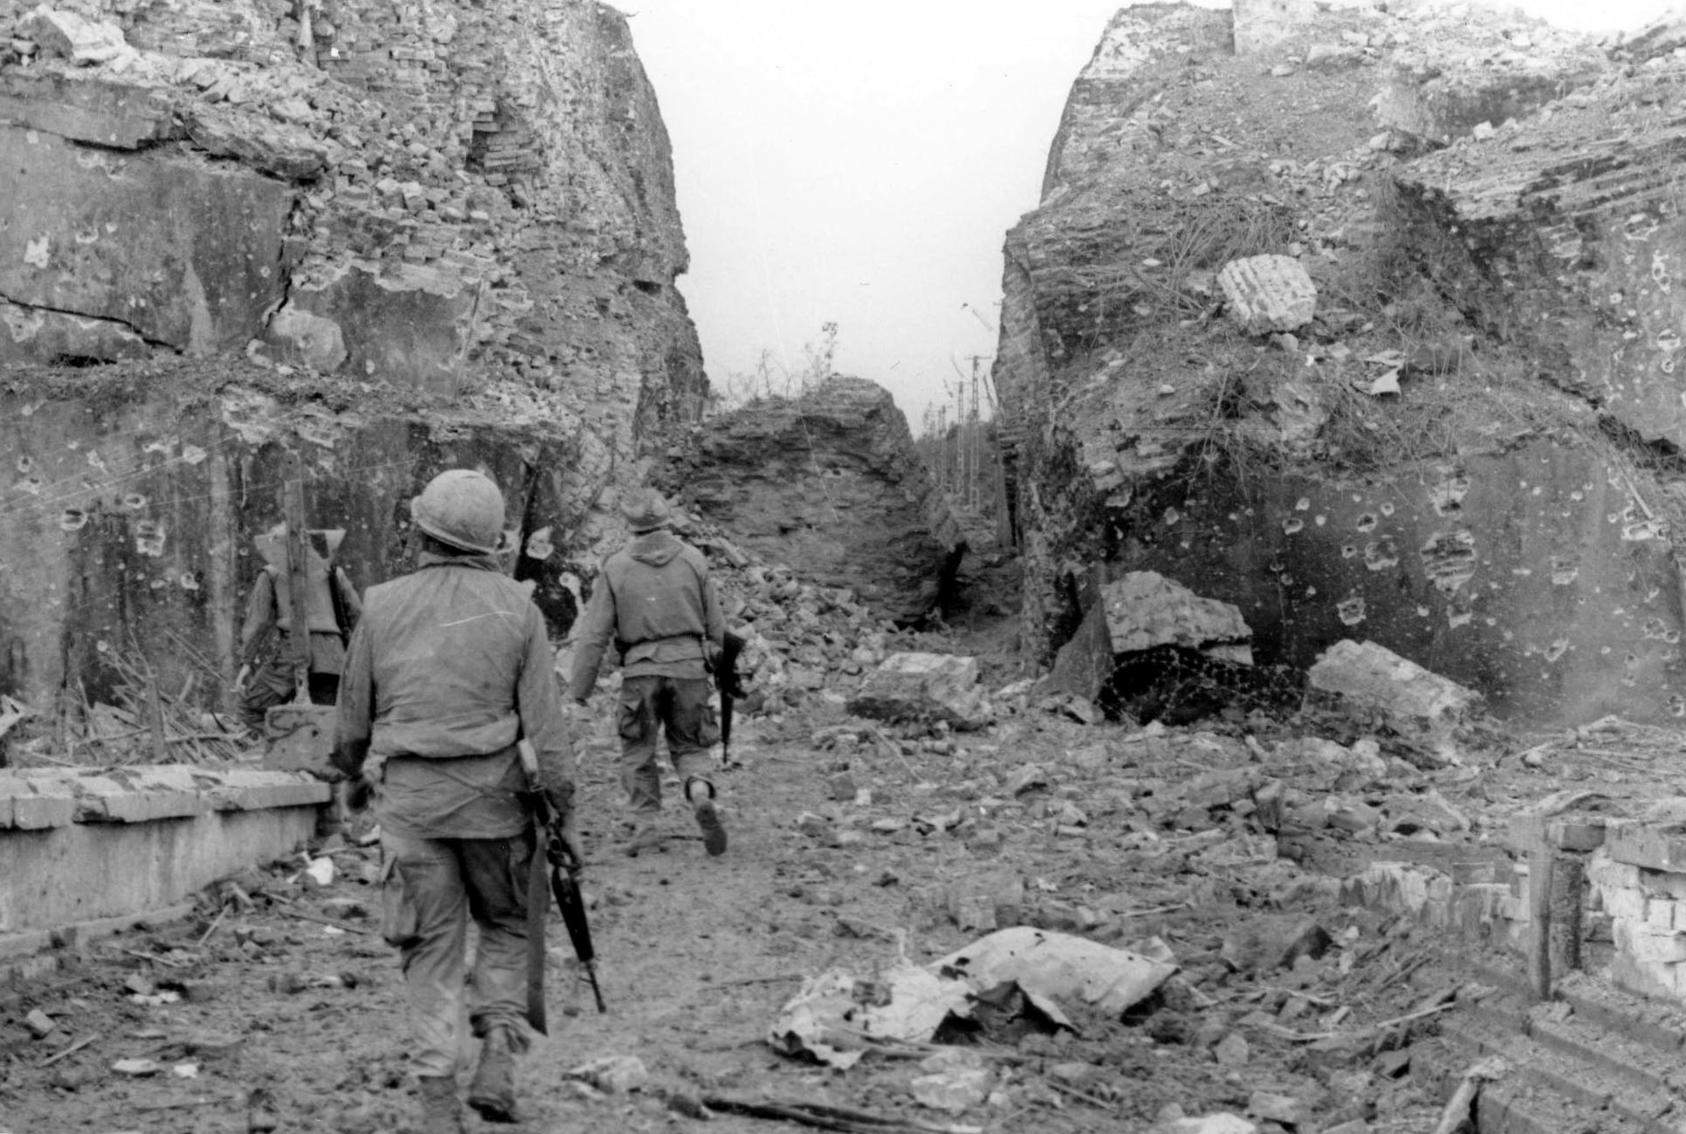 U.S. troops patrol along the shattered ancient walls of the Vietnamese city of Huế during the North Vietnamese 1968 Tet Offensive. That campaign was the bloodiest phase of two decades of war in Vietnam. (U.S. Army)